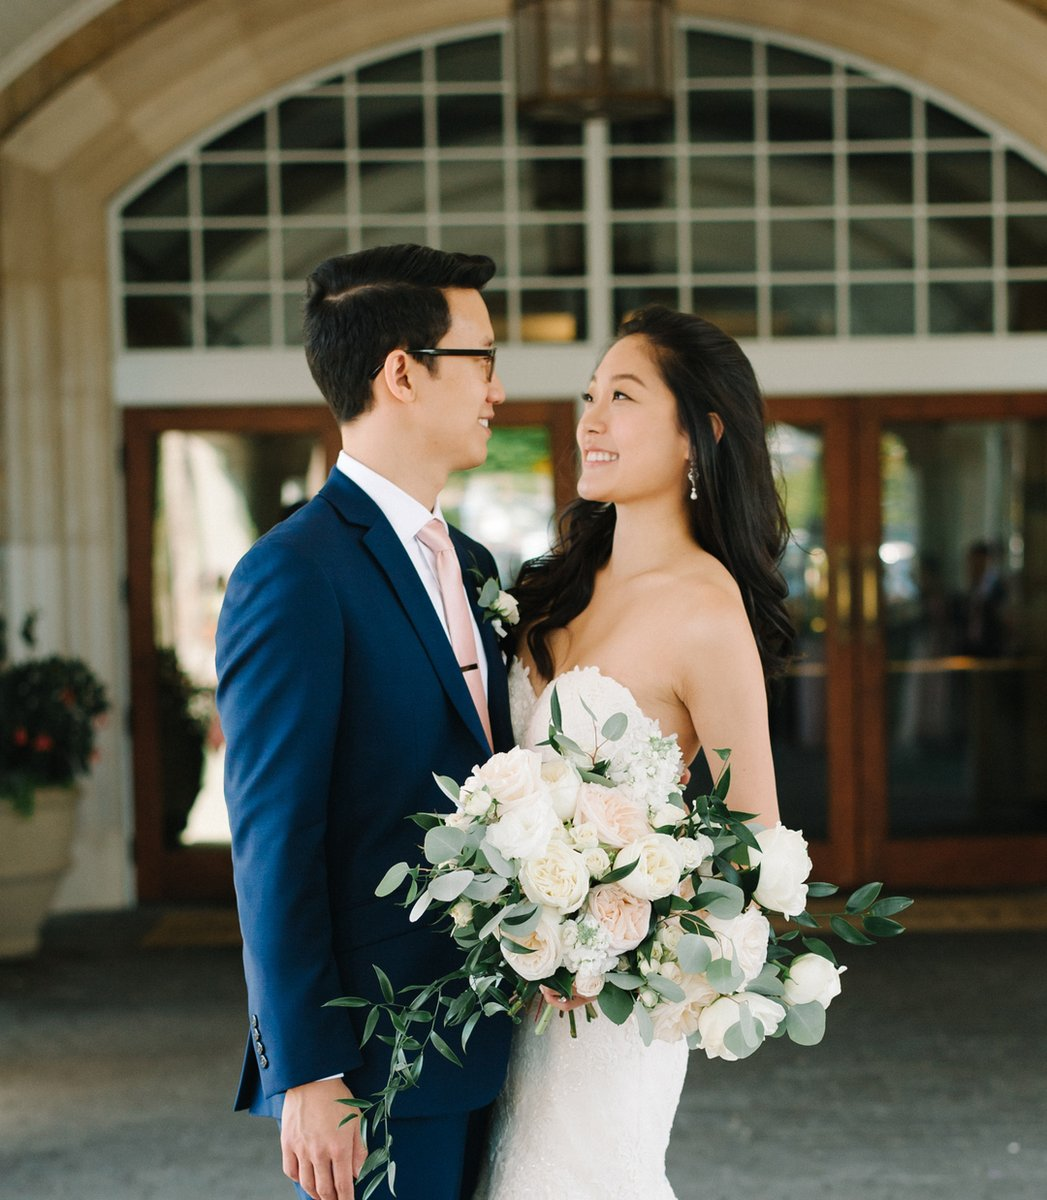 """A flower cannot blossom without sunshine, and man cannot live without love.""  Photo: @bluerosepictures #SeattleWedding #SeattleMakeupartist #SeattleAsianMakeup #Bridalmakeup #Bridalhair #wedding #weddingday #weddinginspiration #weddingideas #weddingplanning #weddingdetails #pic.twitter.com/HYXVBE8DqA"